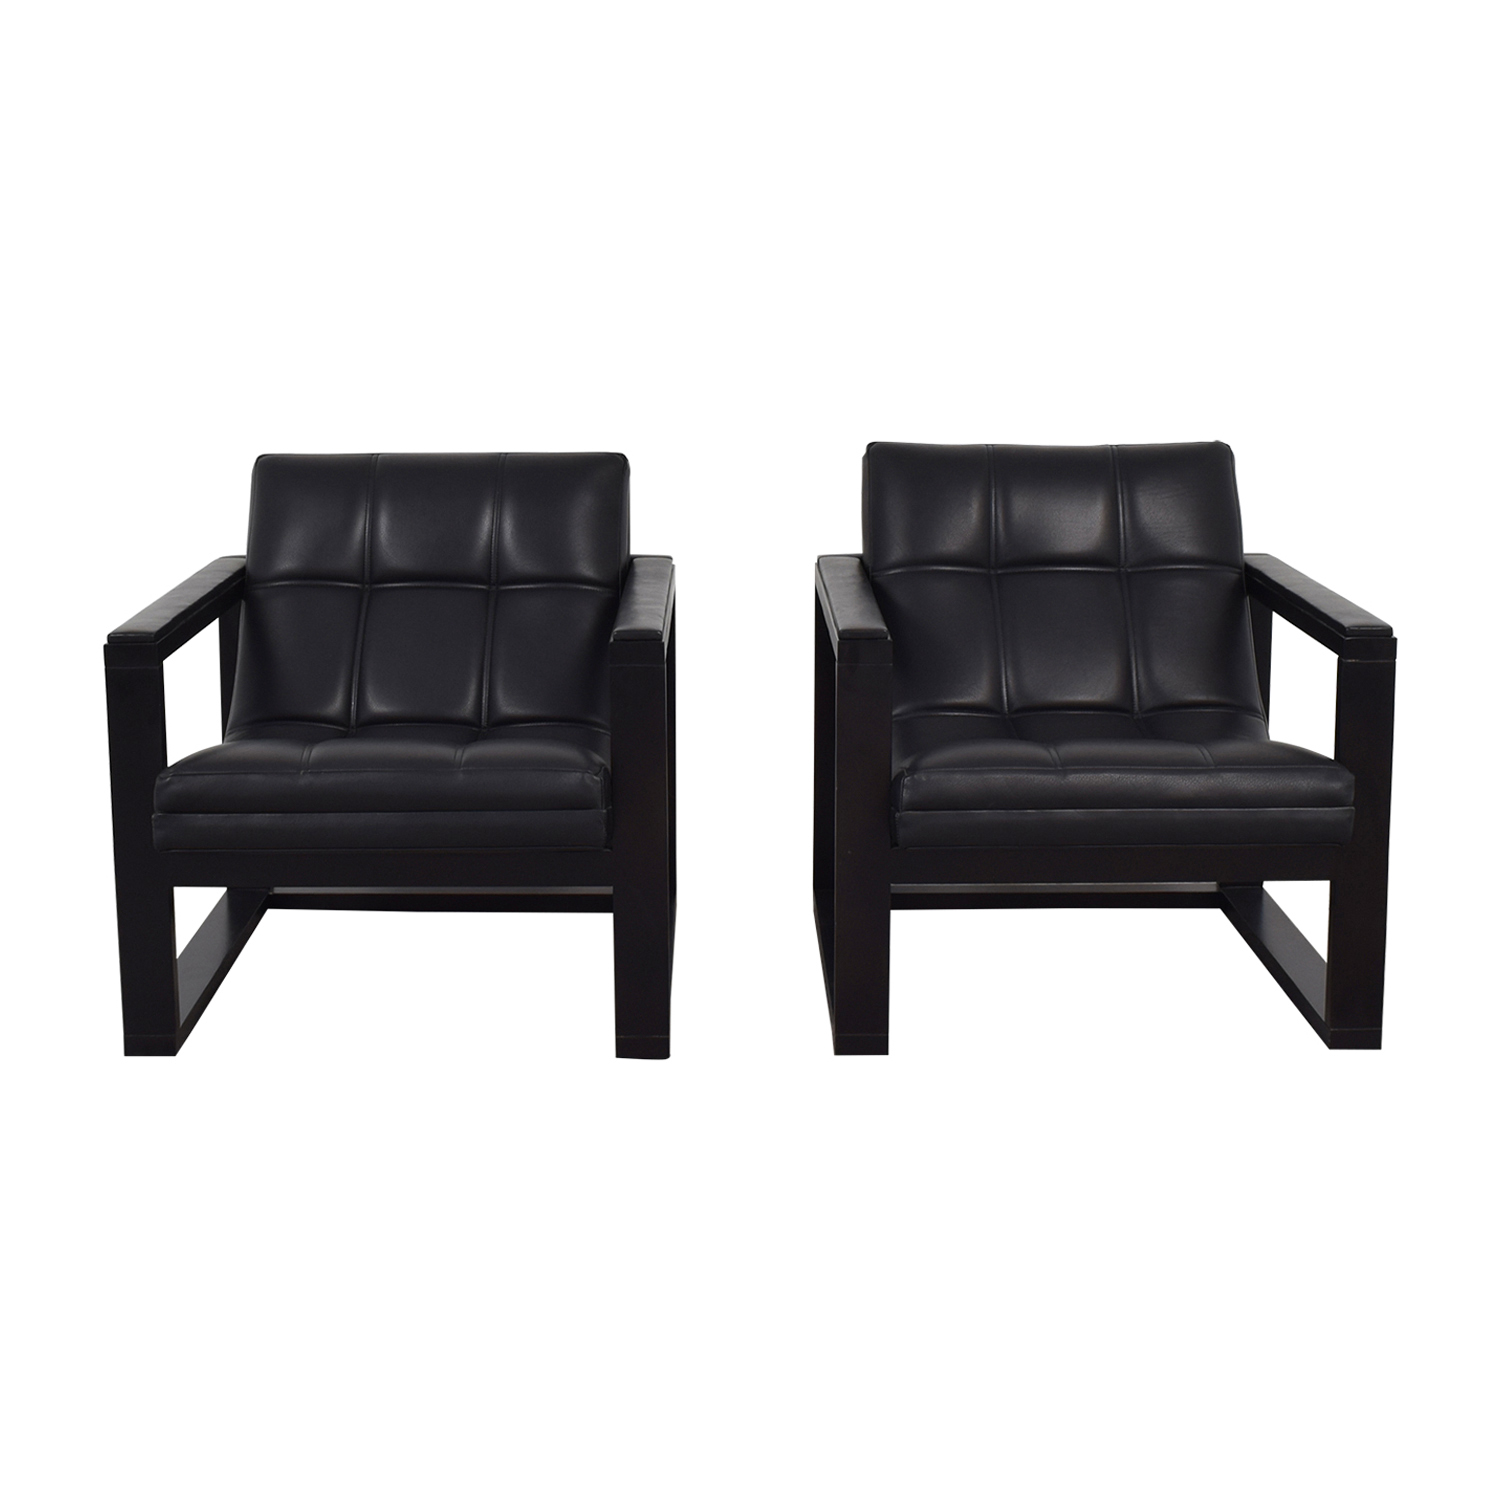 Black Accent Chairs Maurice Villency Architectural Black Accent Chairs